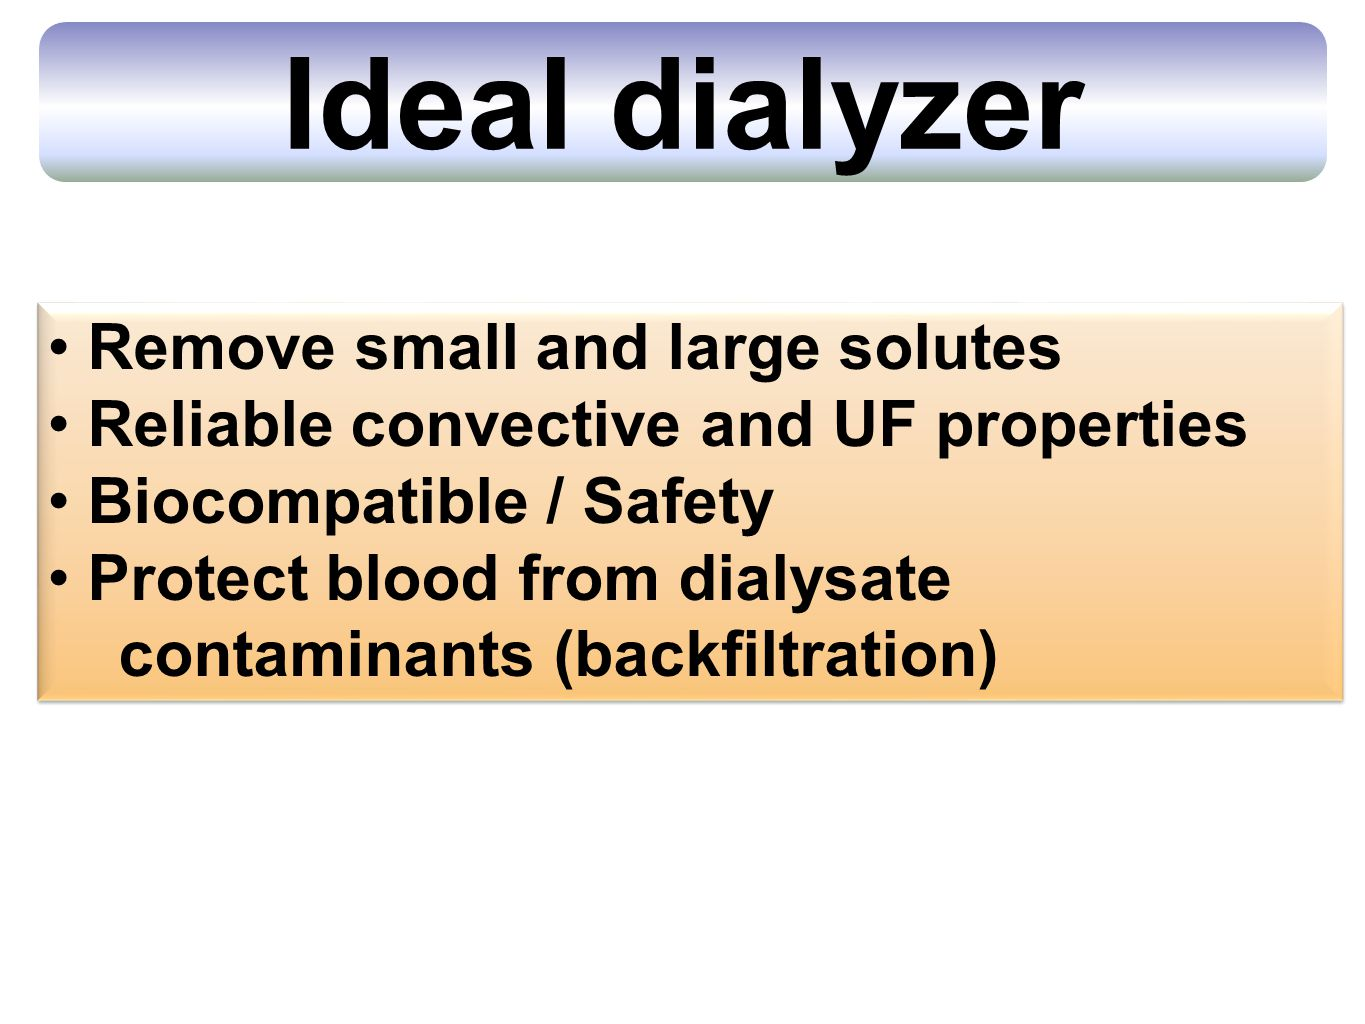 Ideal dialyzer Remove small and large solutes Reliable convective and UF properties Biocompatible / Safety Protect blood from dialysate contaminants (backfiltration) Remove small and large solutes Reliable convective and UF properties Biocompatible / Safety Protect blood from dialysate contaminants (backfiltration)